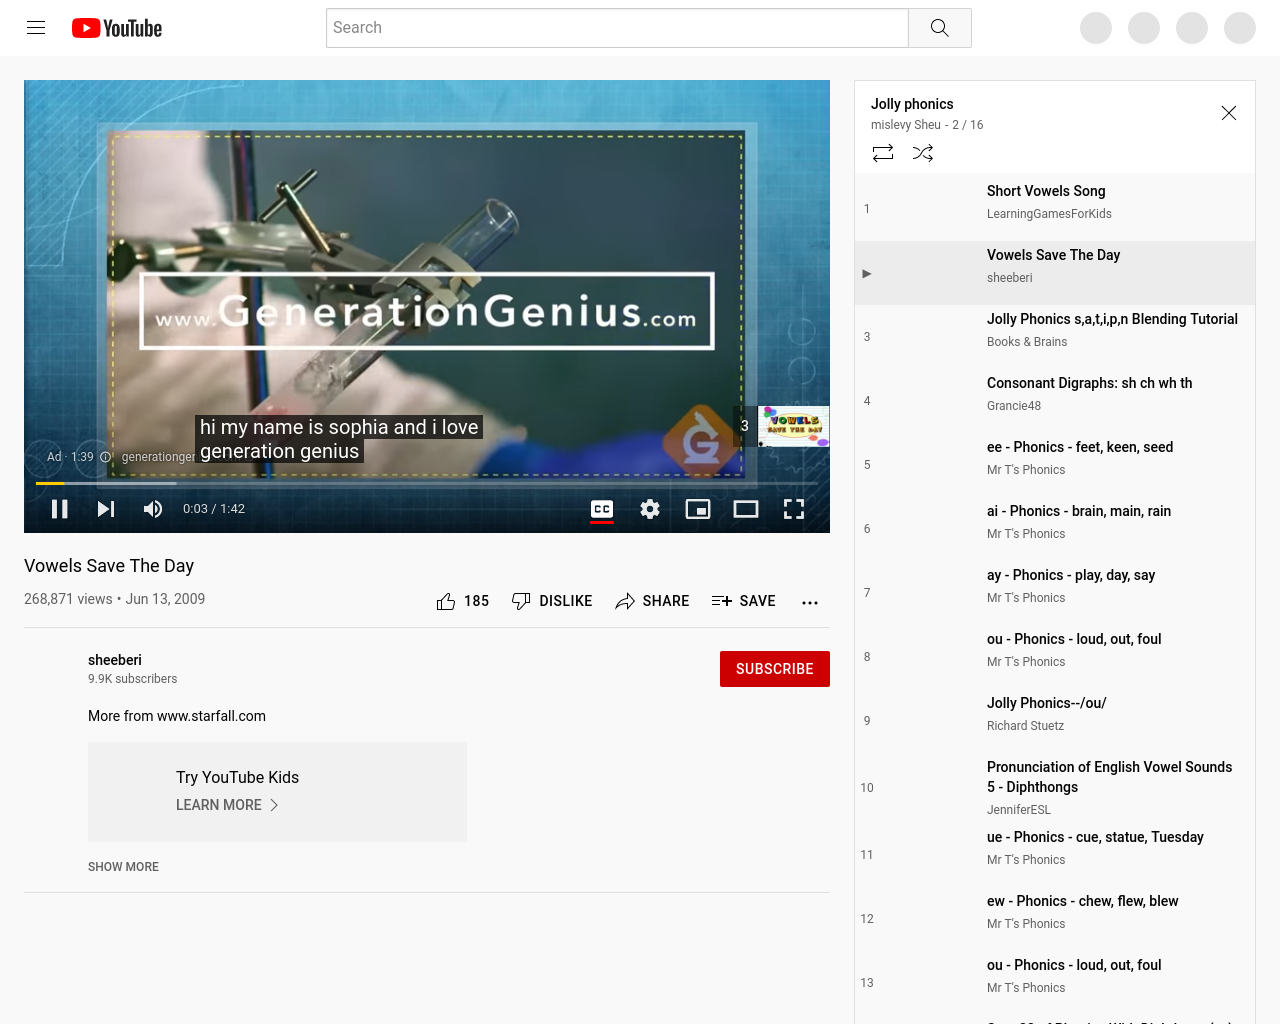 Long vowel sounds song from Jolly Phonics.